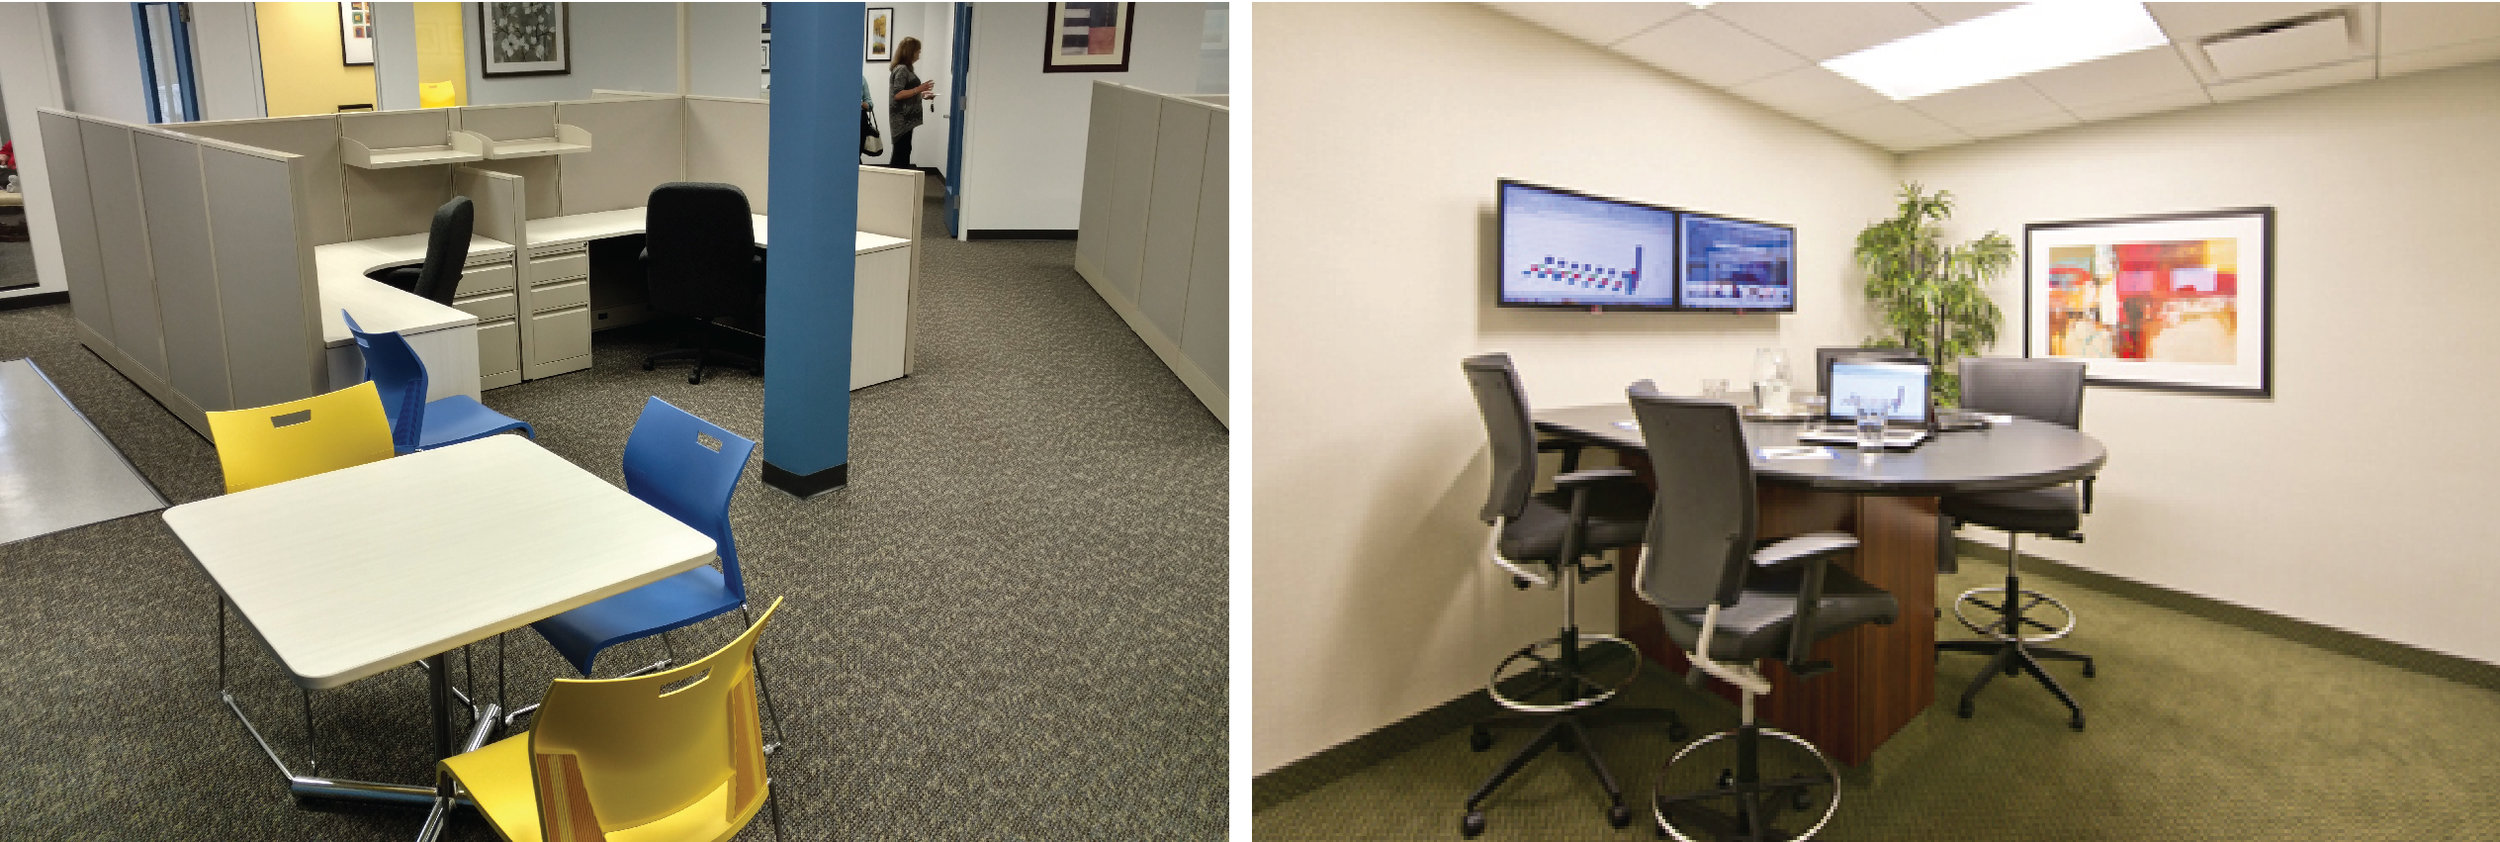 Two office spaces we designed featuring color and artwork.